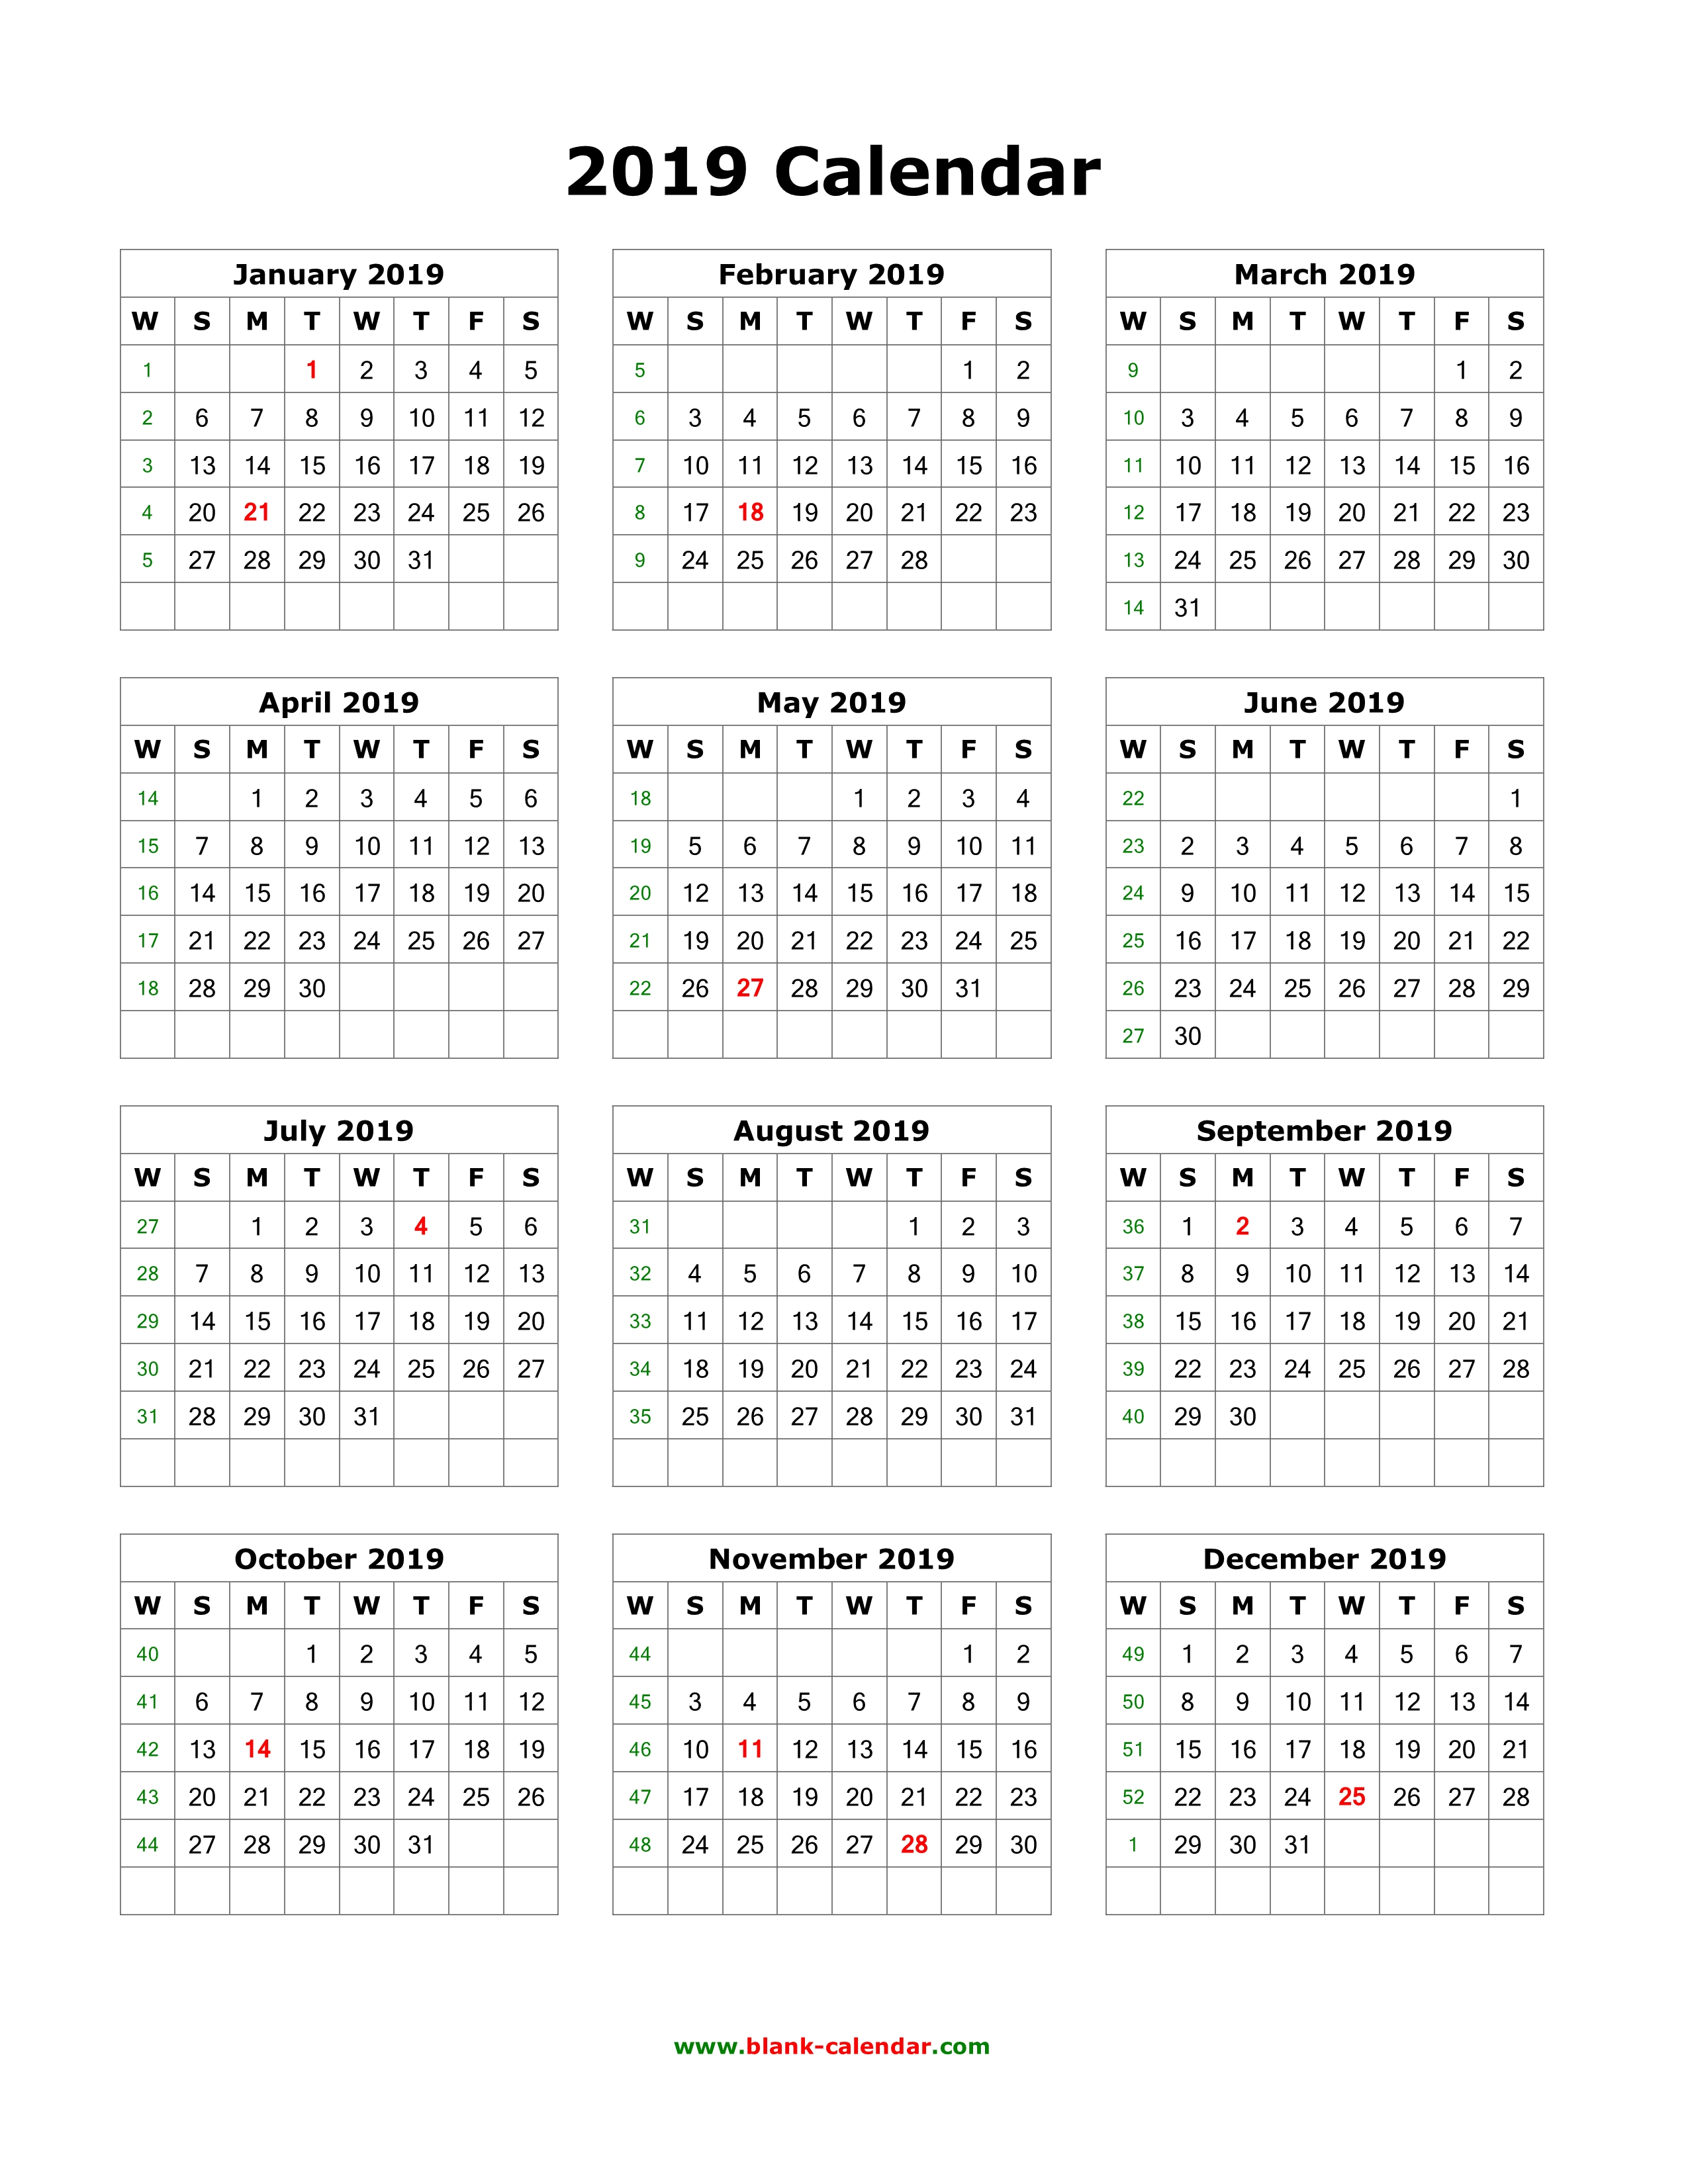 Download Blank Calendar 2019 (12 Months On One Page, Vertical) for Blank 12 Month Calender